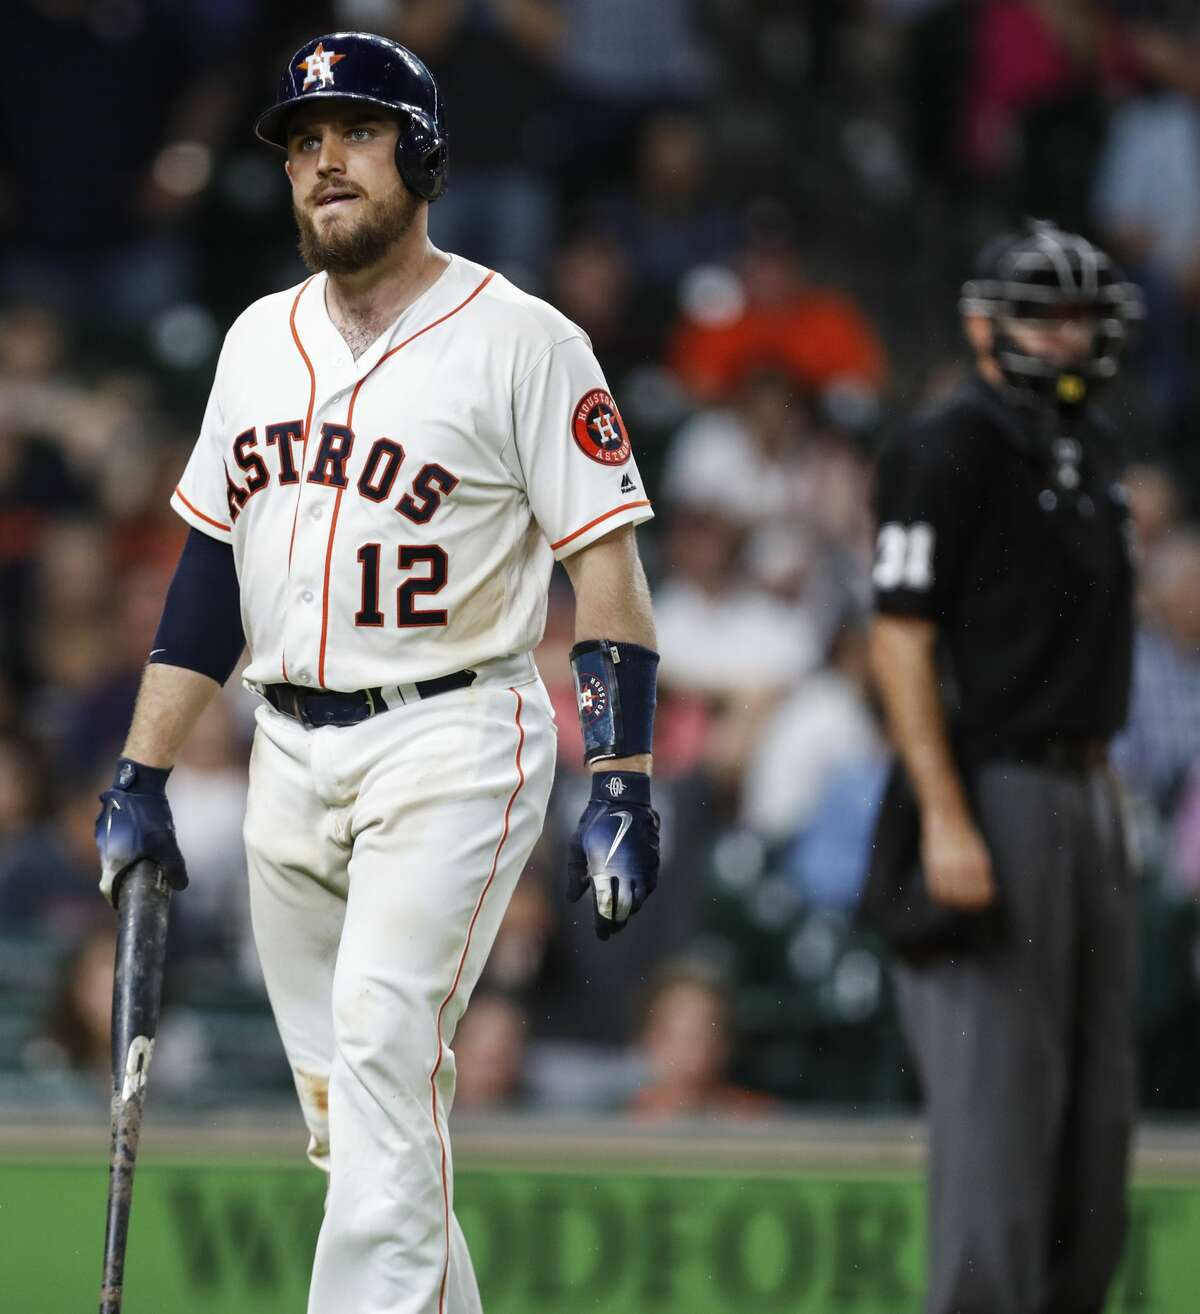 Houston Astros catcher Max Stassi (12) walks off the field after striking out against the Tampa Bay Rays during the ninth inning of a major league baseball game at Minute Maid Park on Tuesday, June 19, 2018, in Houston. ( Brett Coomer / Houston Chronicle )